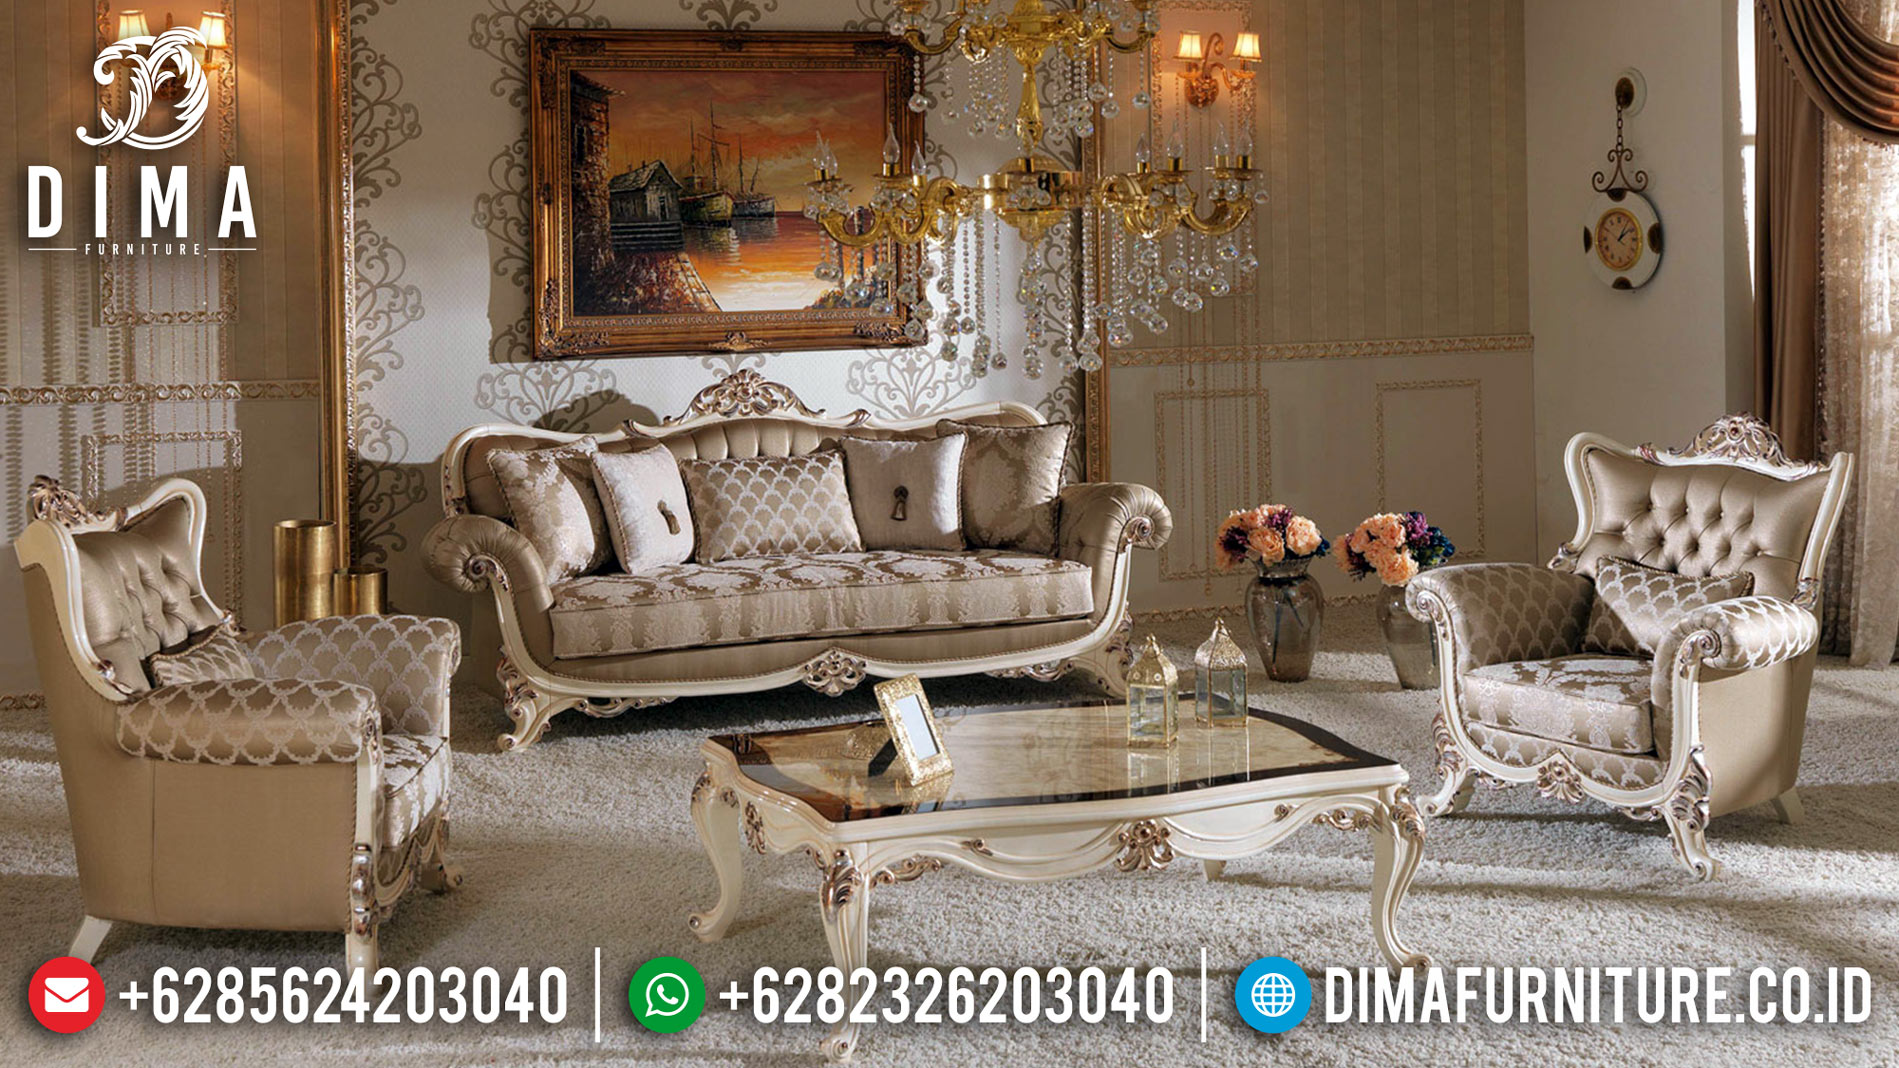 Best Price Sofa Tamu Mewah Ukiran Classic Luxury Furniture Jepara BT-0440